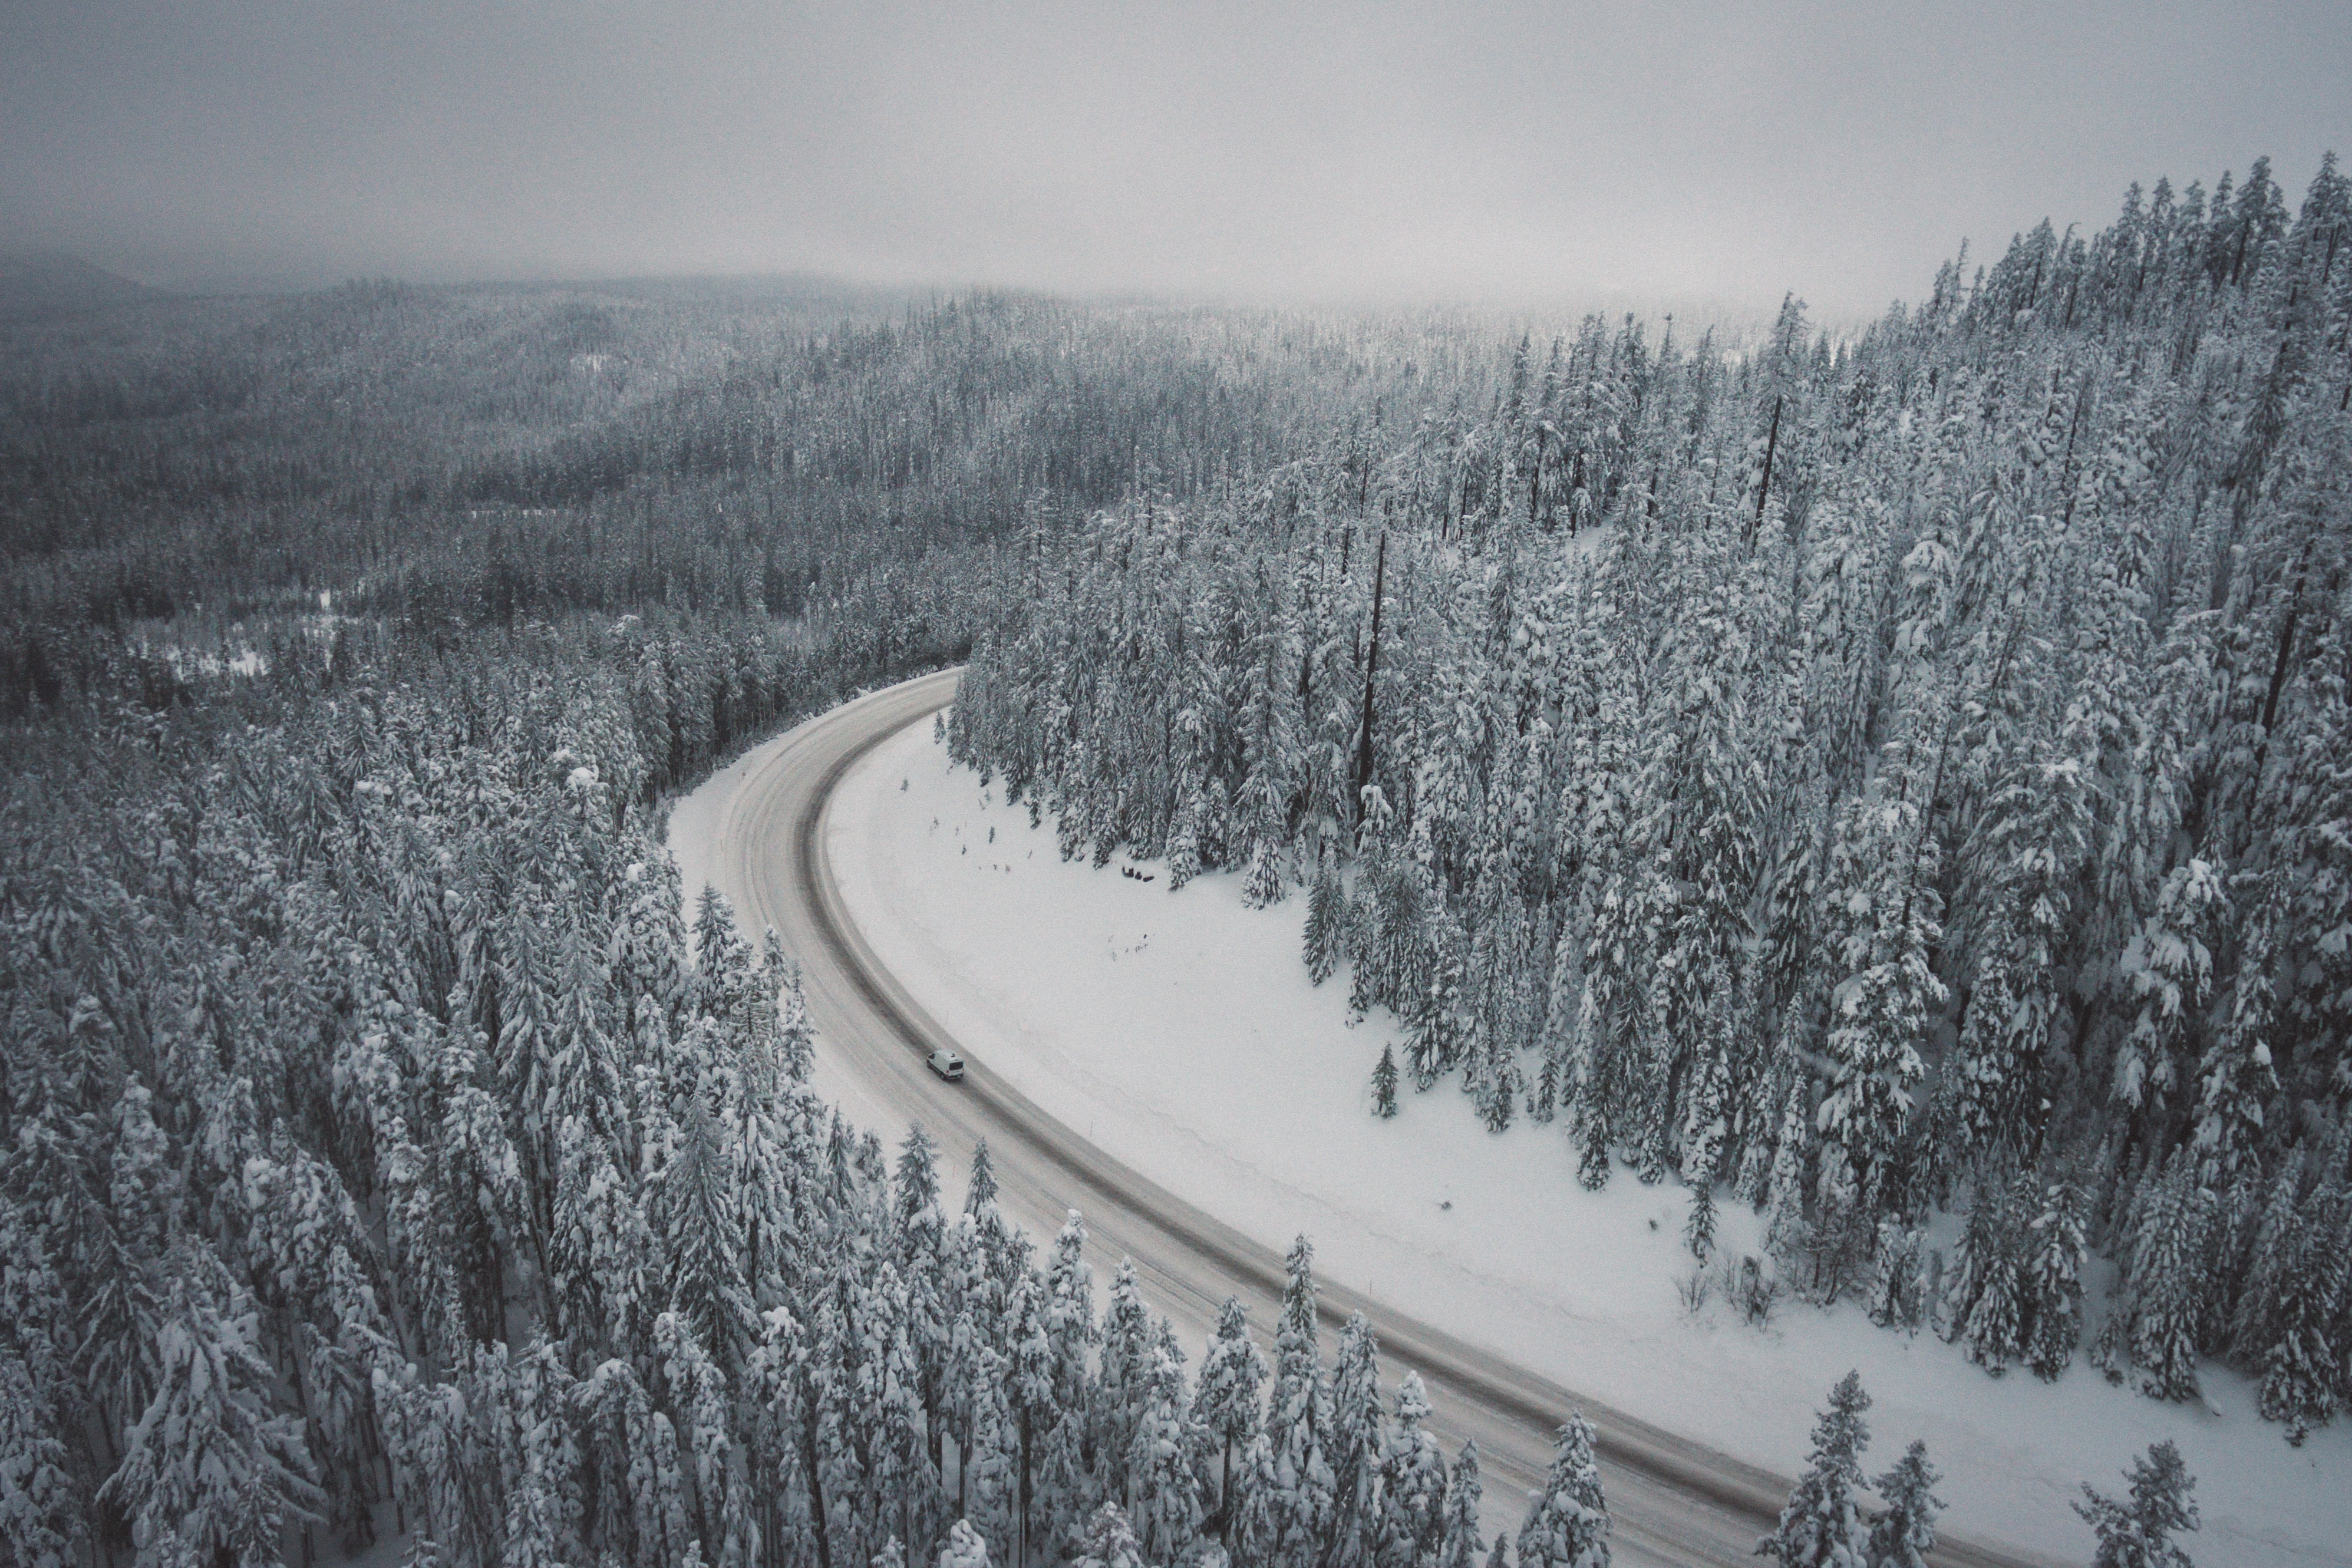 Winding winter road through a snowy forest landscape